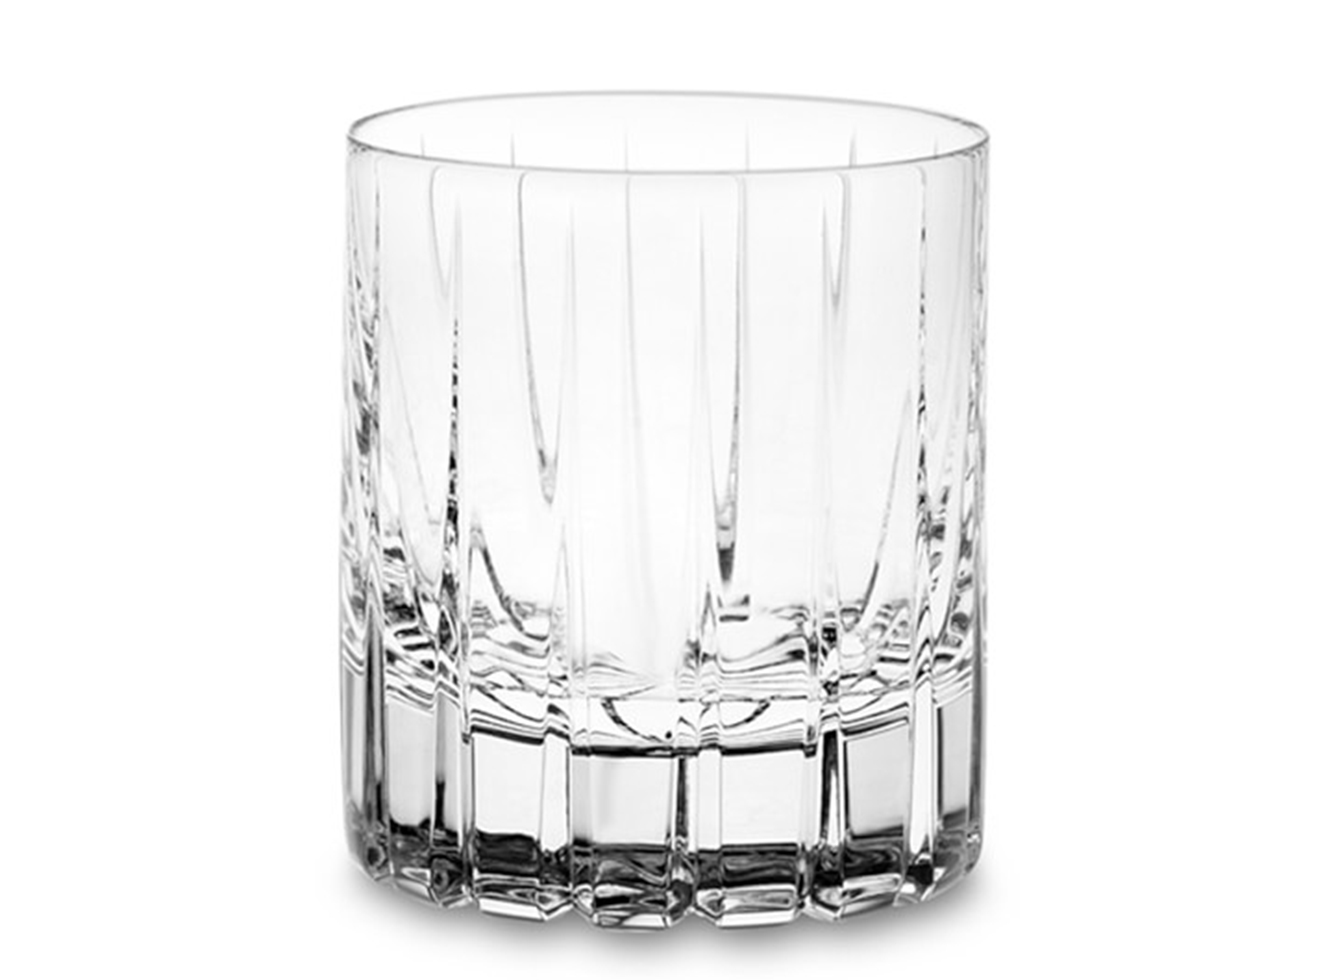 Williams Sonoma Dorset Crystal Double